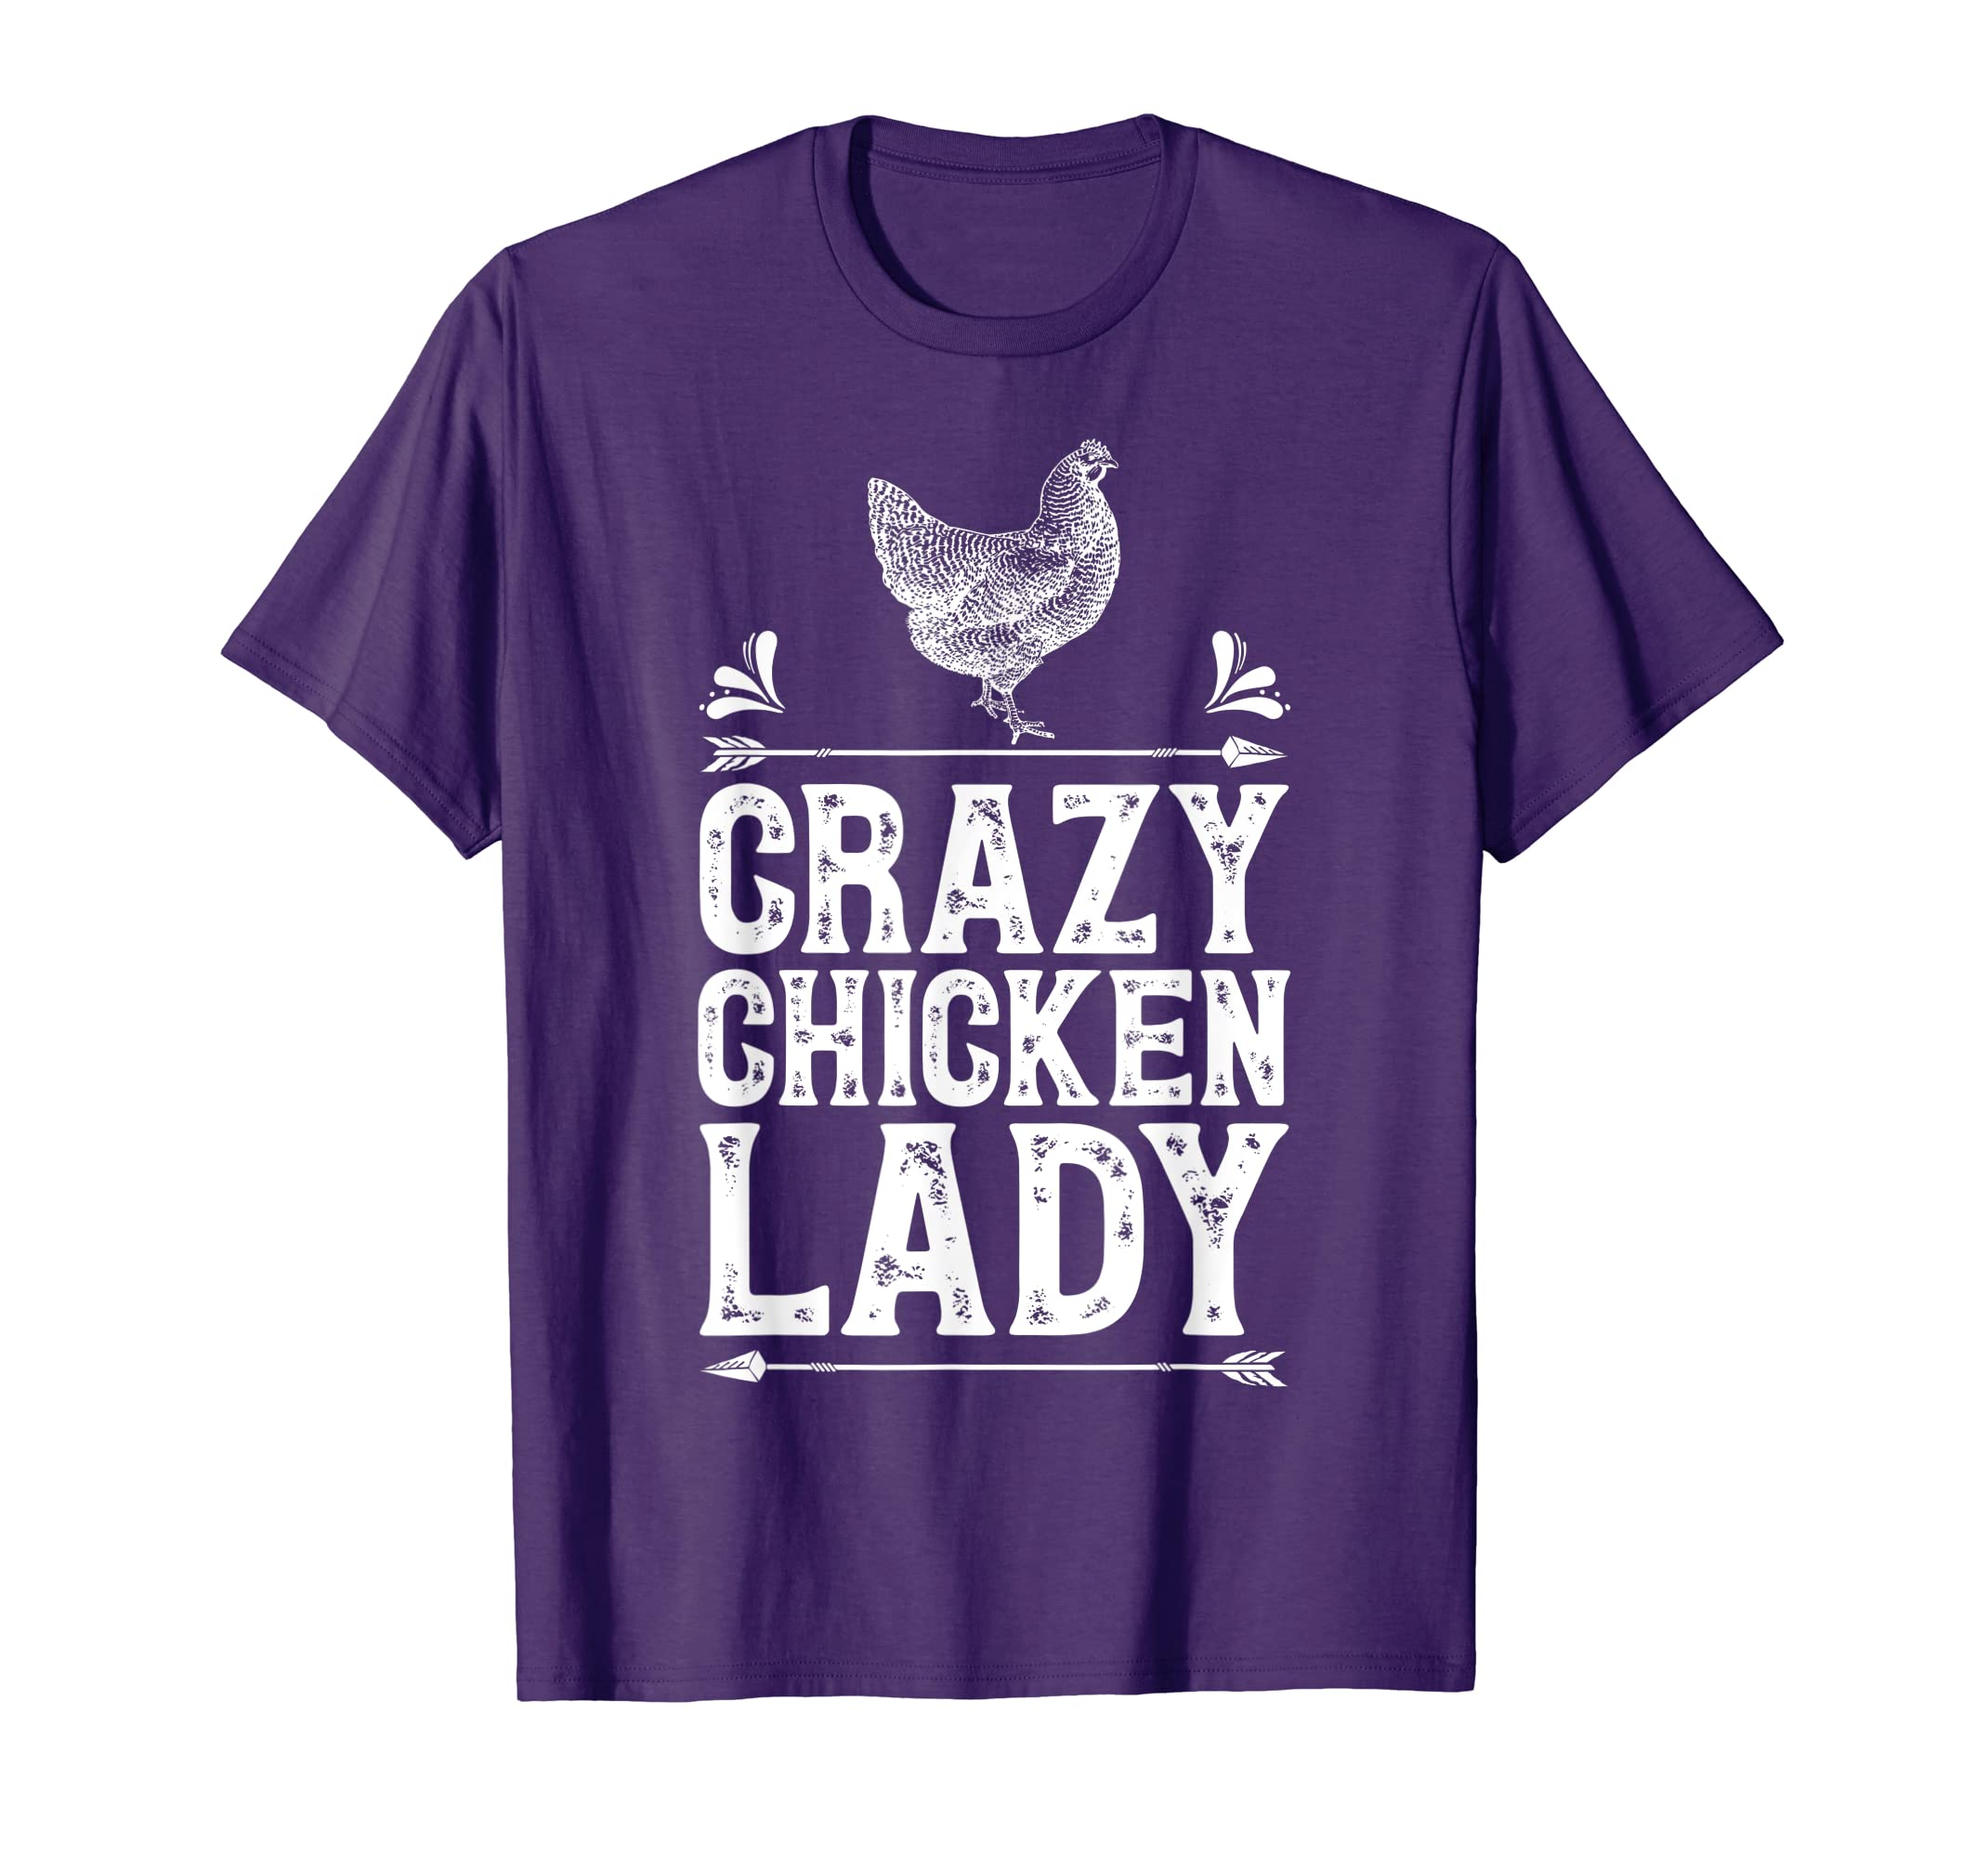 71be49c91 Amazon.com: Crazy Chicken Lady T Shirt Funny Farm Poultry Farmer Gifts:  Clothing